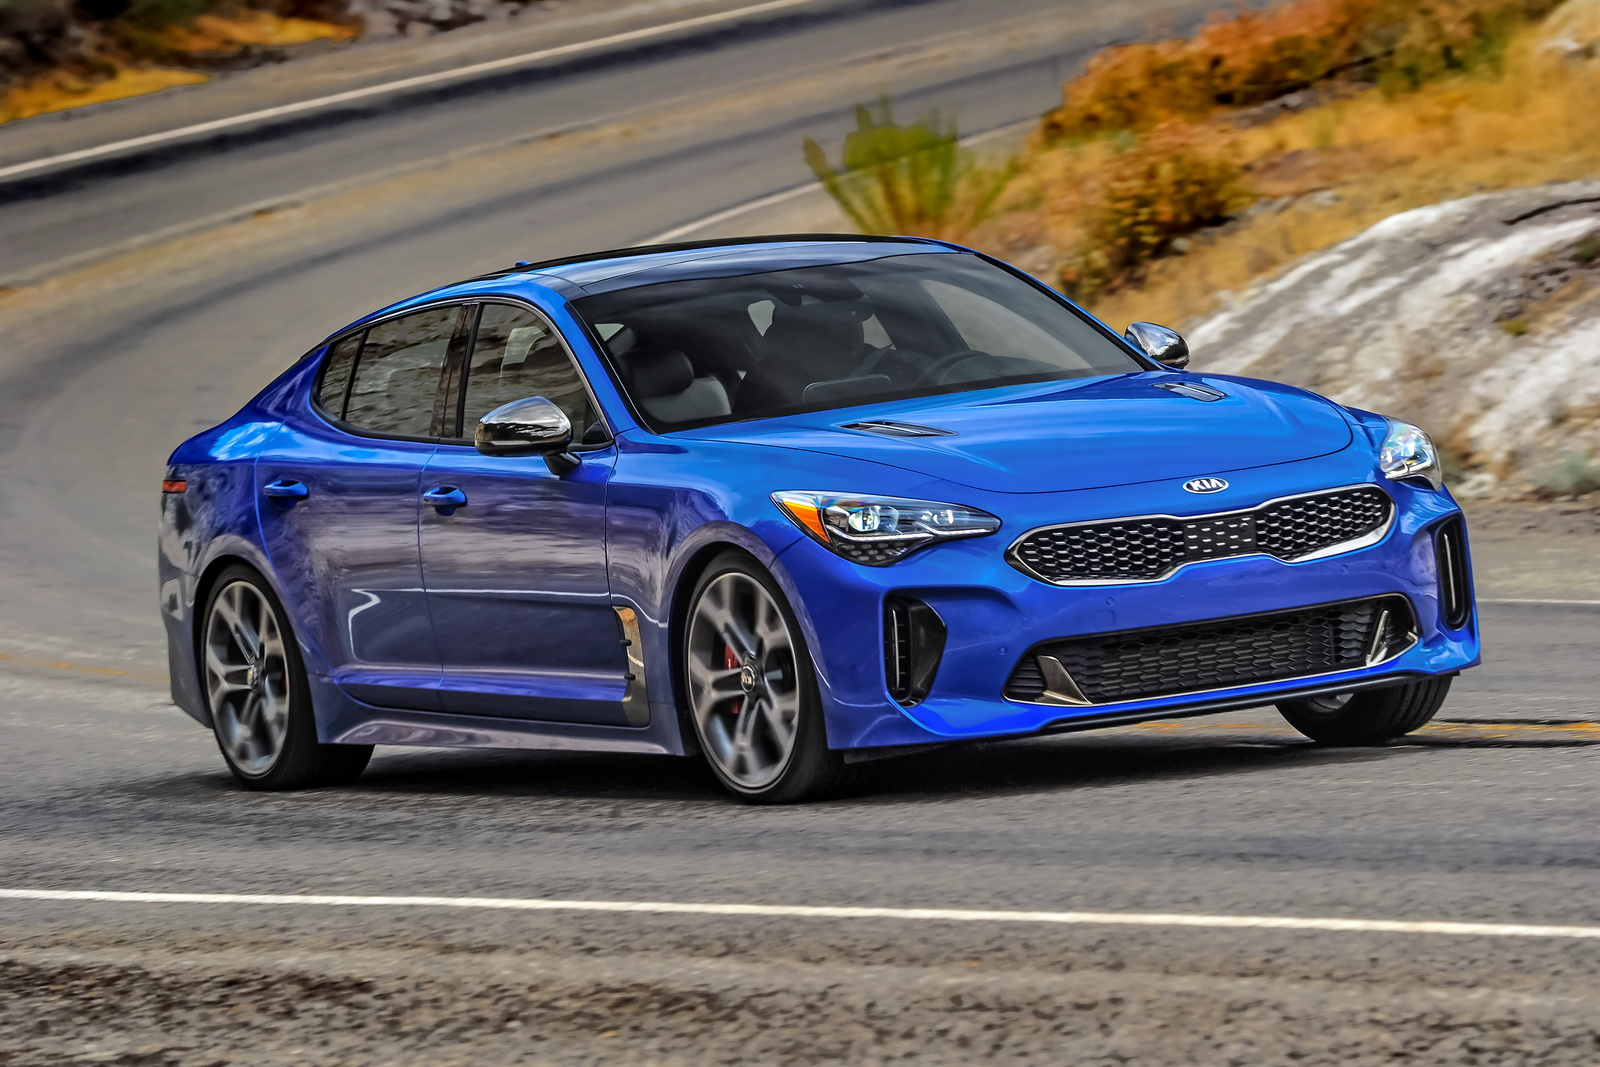 kia drops new gallery of sexy new stinger v6 52 pics carscoops. Black Bedroom Furniture Sets. Home Design Ideas